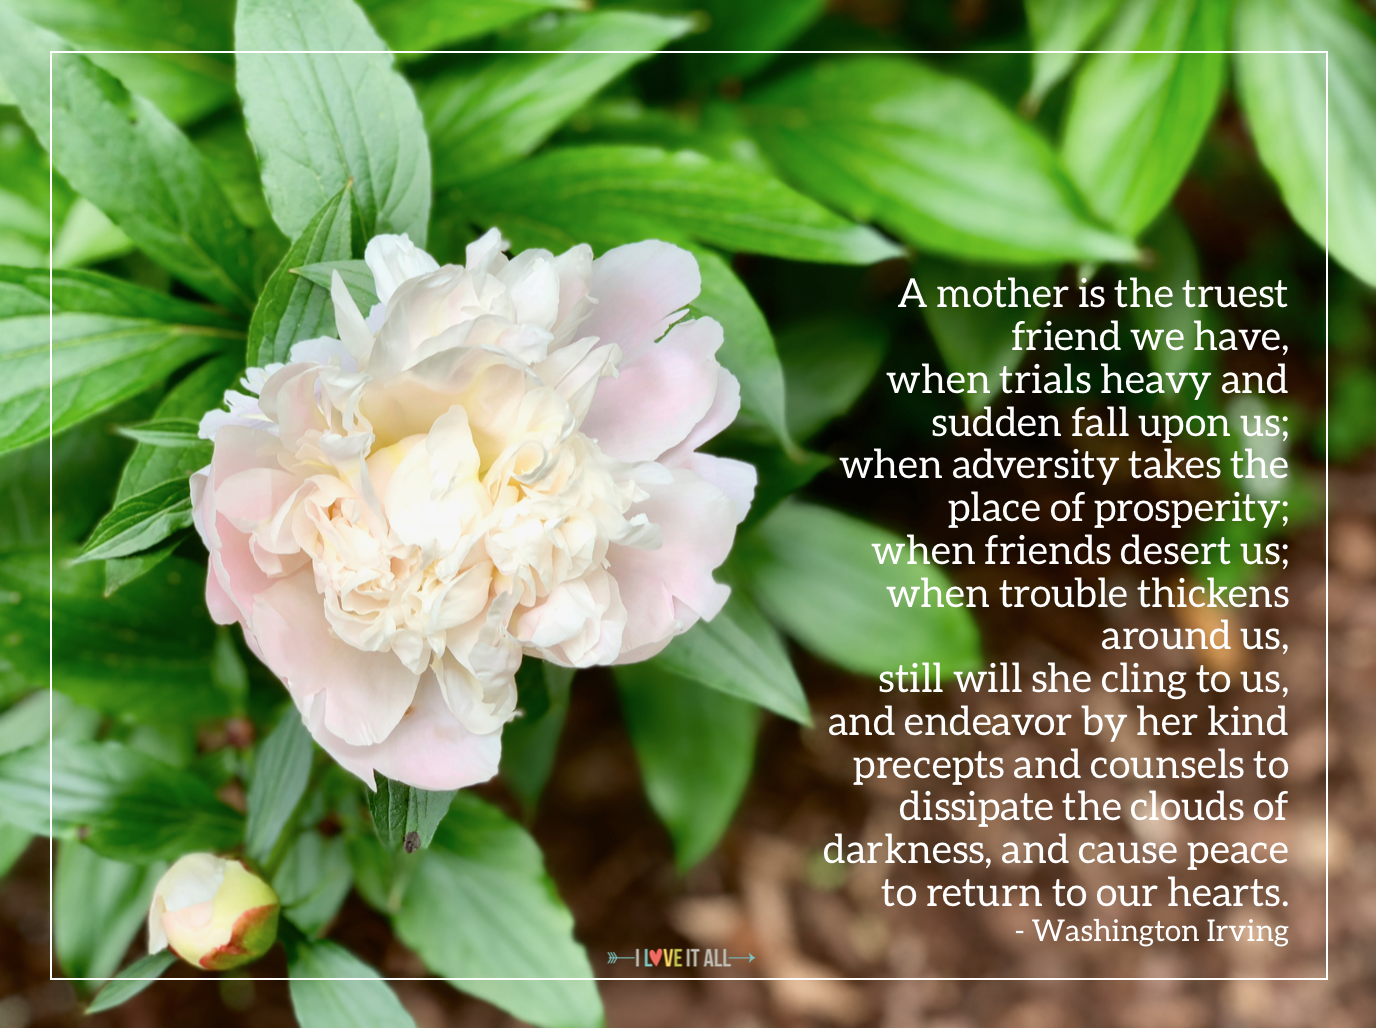 #Washington Irving #mom #mother quote #friend #love #quote #quotes #Mother's Day Quote #peony #Sunday Photos